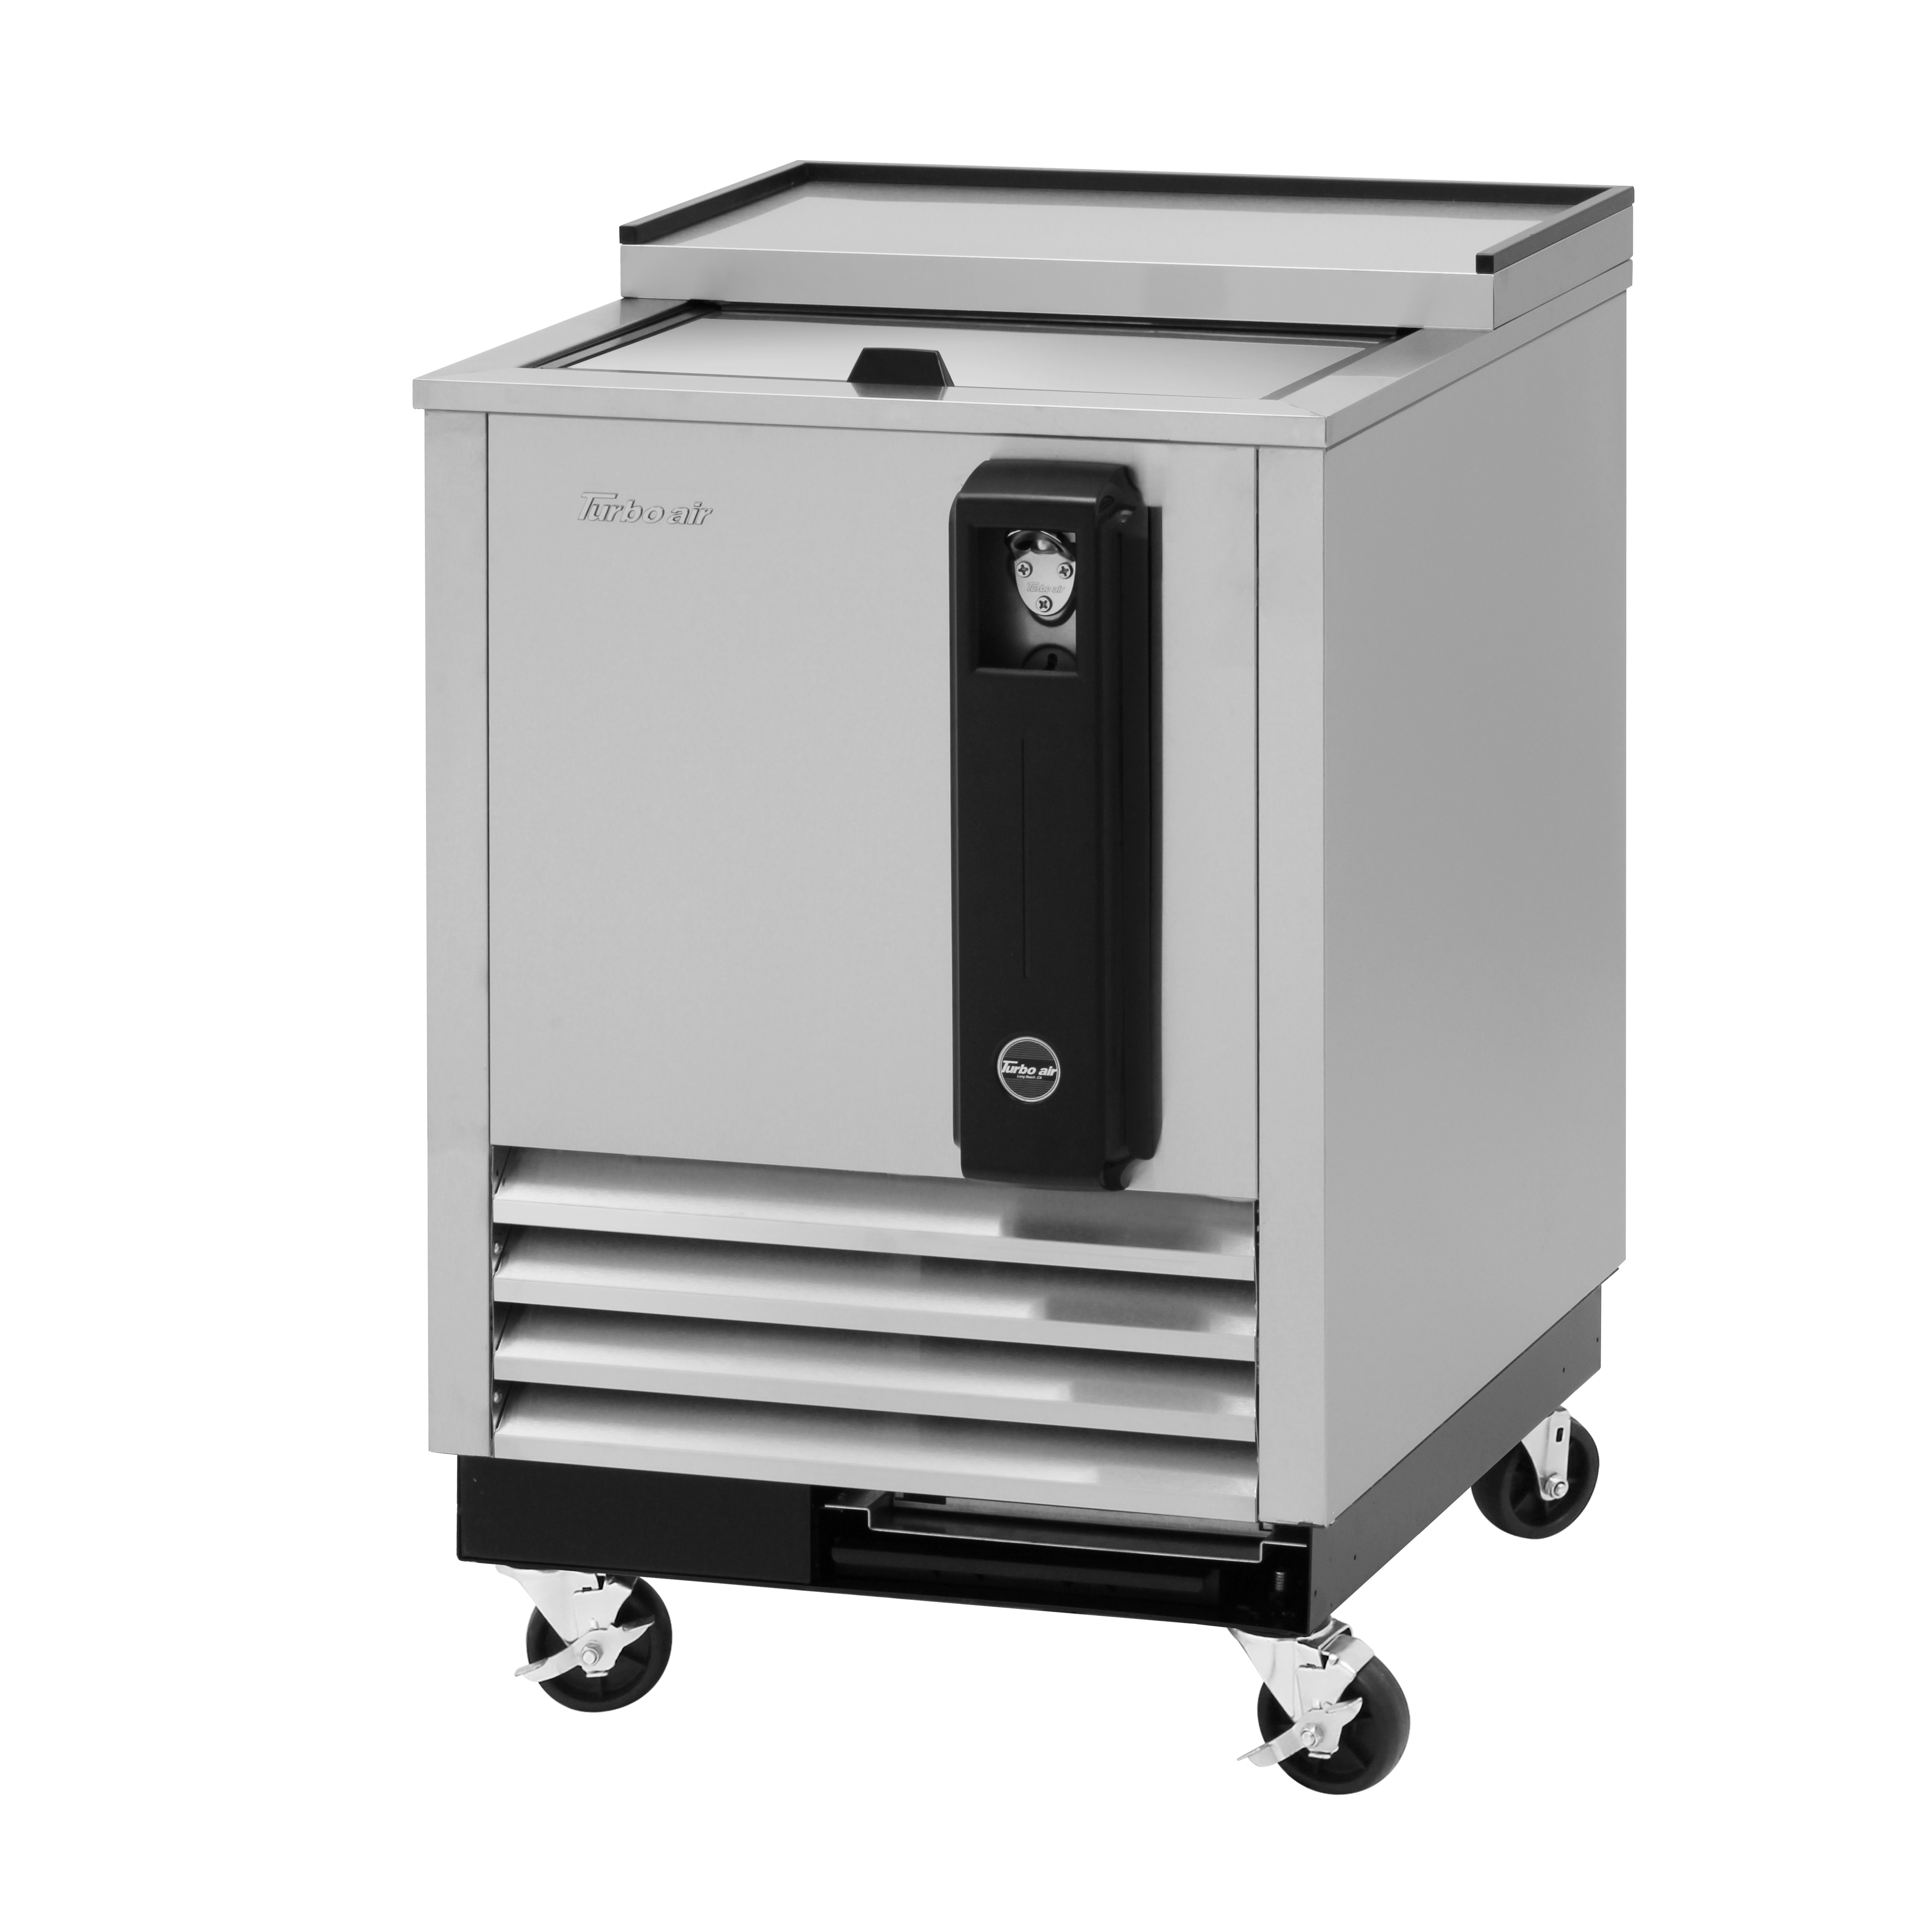 Turbo Air TBC-24SD-N6 bottle cooler